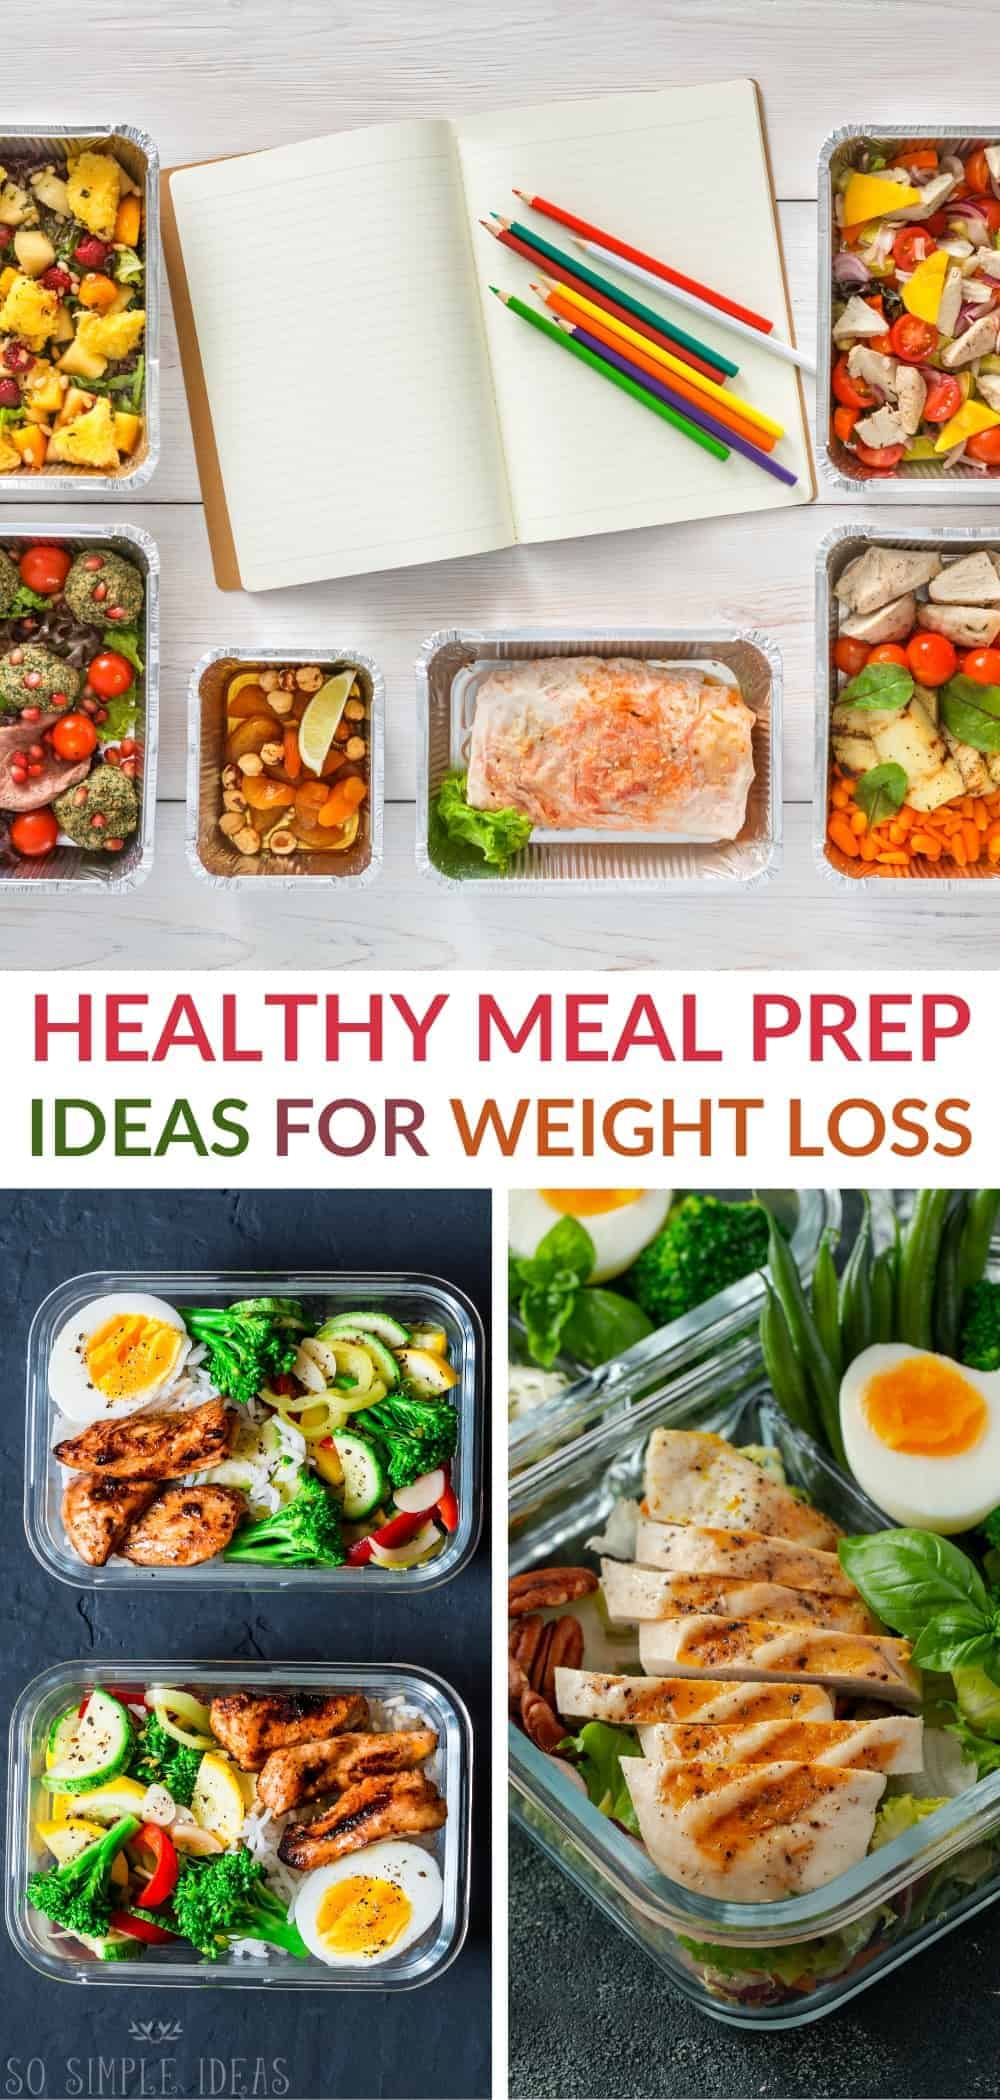 healthy meal prep ideas for weight loss pinterest image